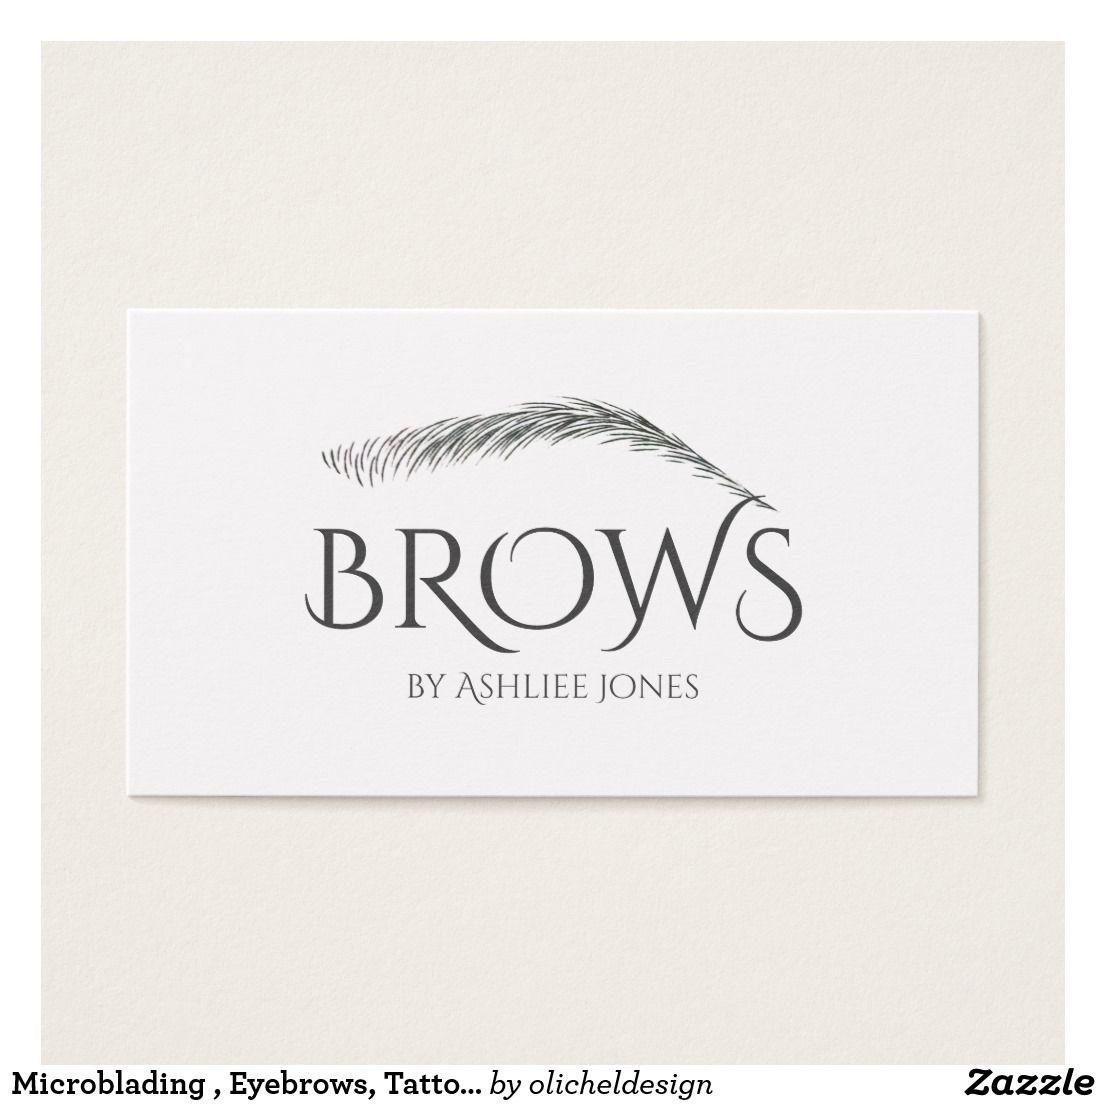 Microblading eyebrows tattoo permanent makeup business card microblading eyebrows tattoo permanent makeup business card colourmoves